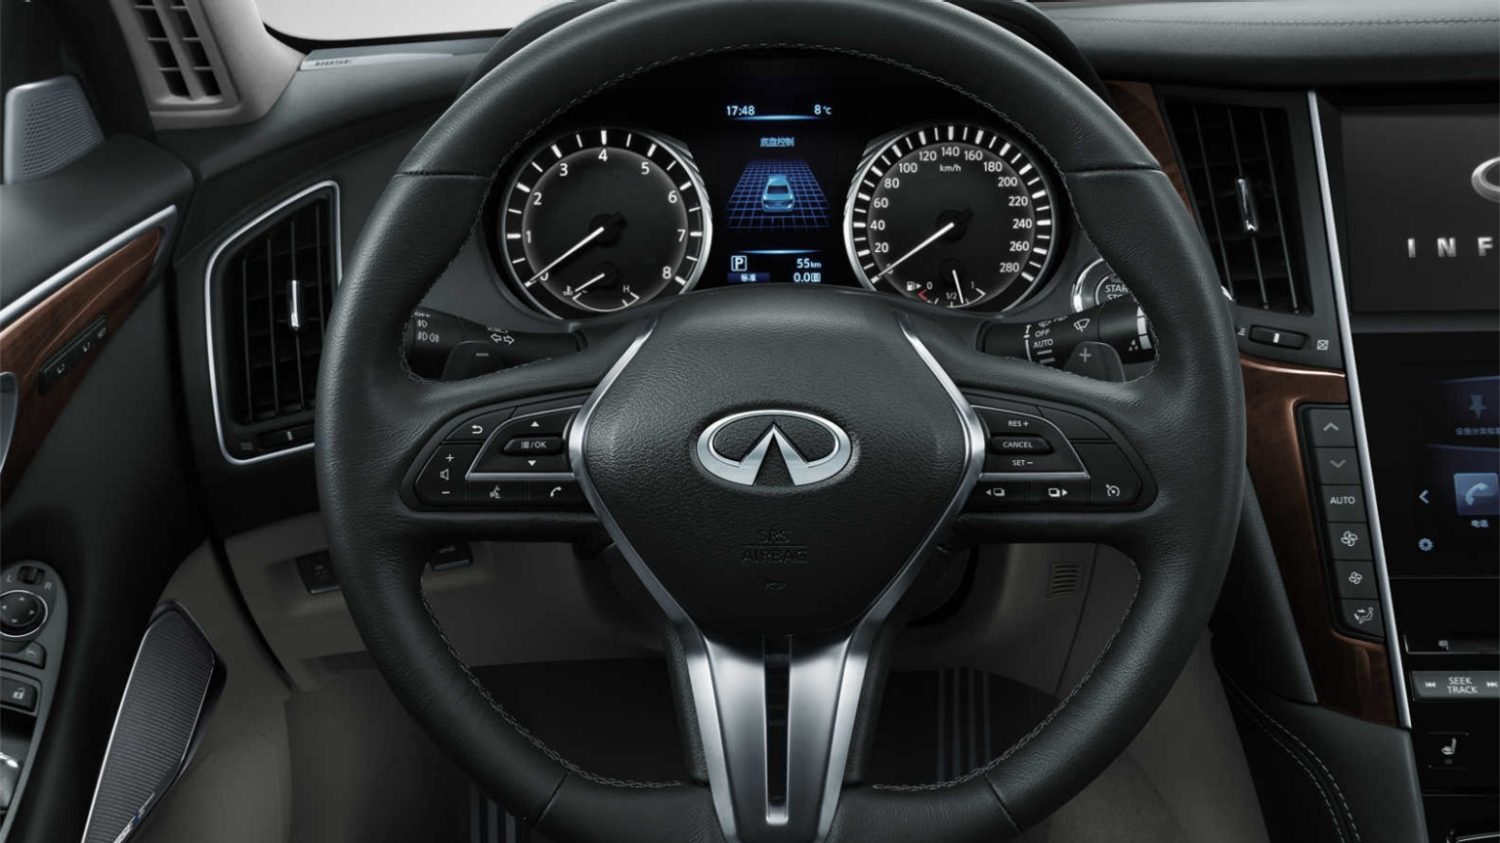 2018 INFINITI Q50 Red Sport Sedan Design Gallery | Steering Wheel  Controls